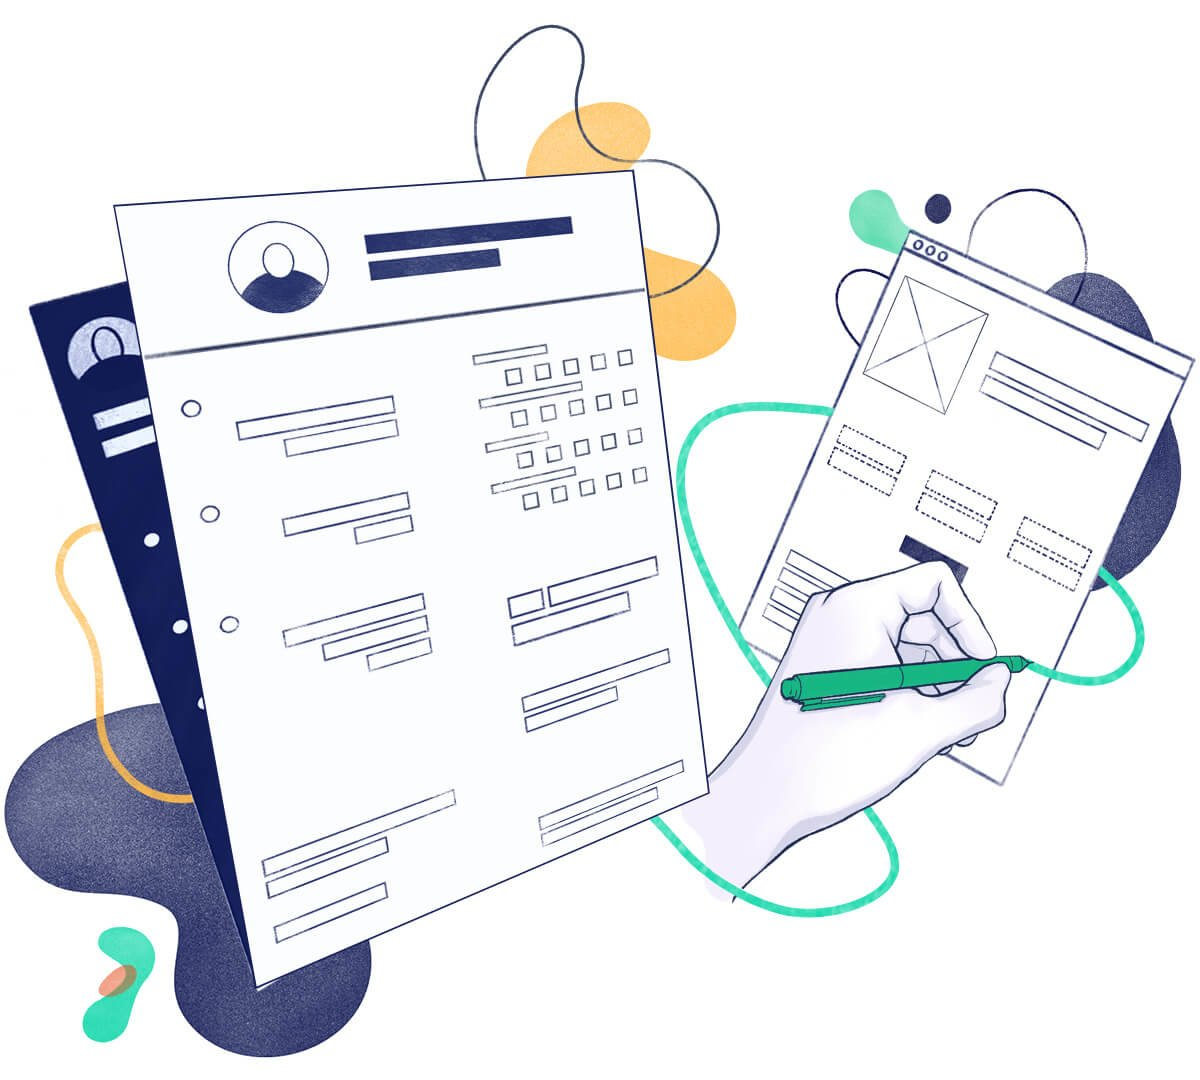 Web Designer Resume Examples & 21 Tips [Template & Guide]